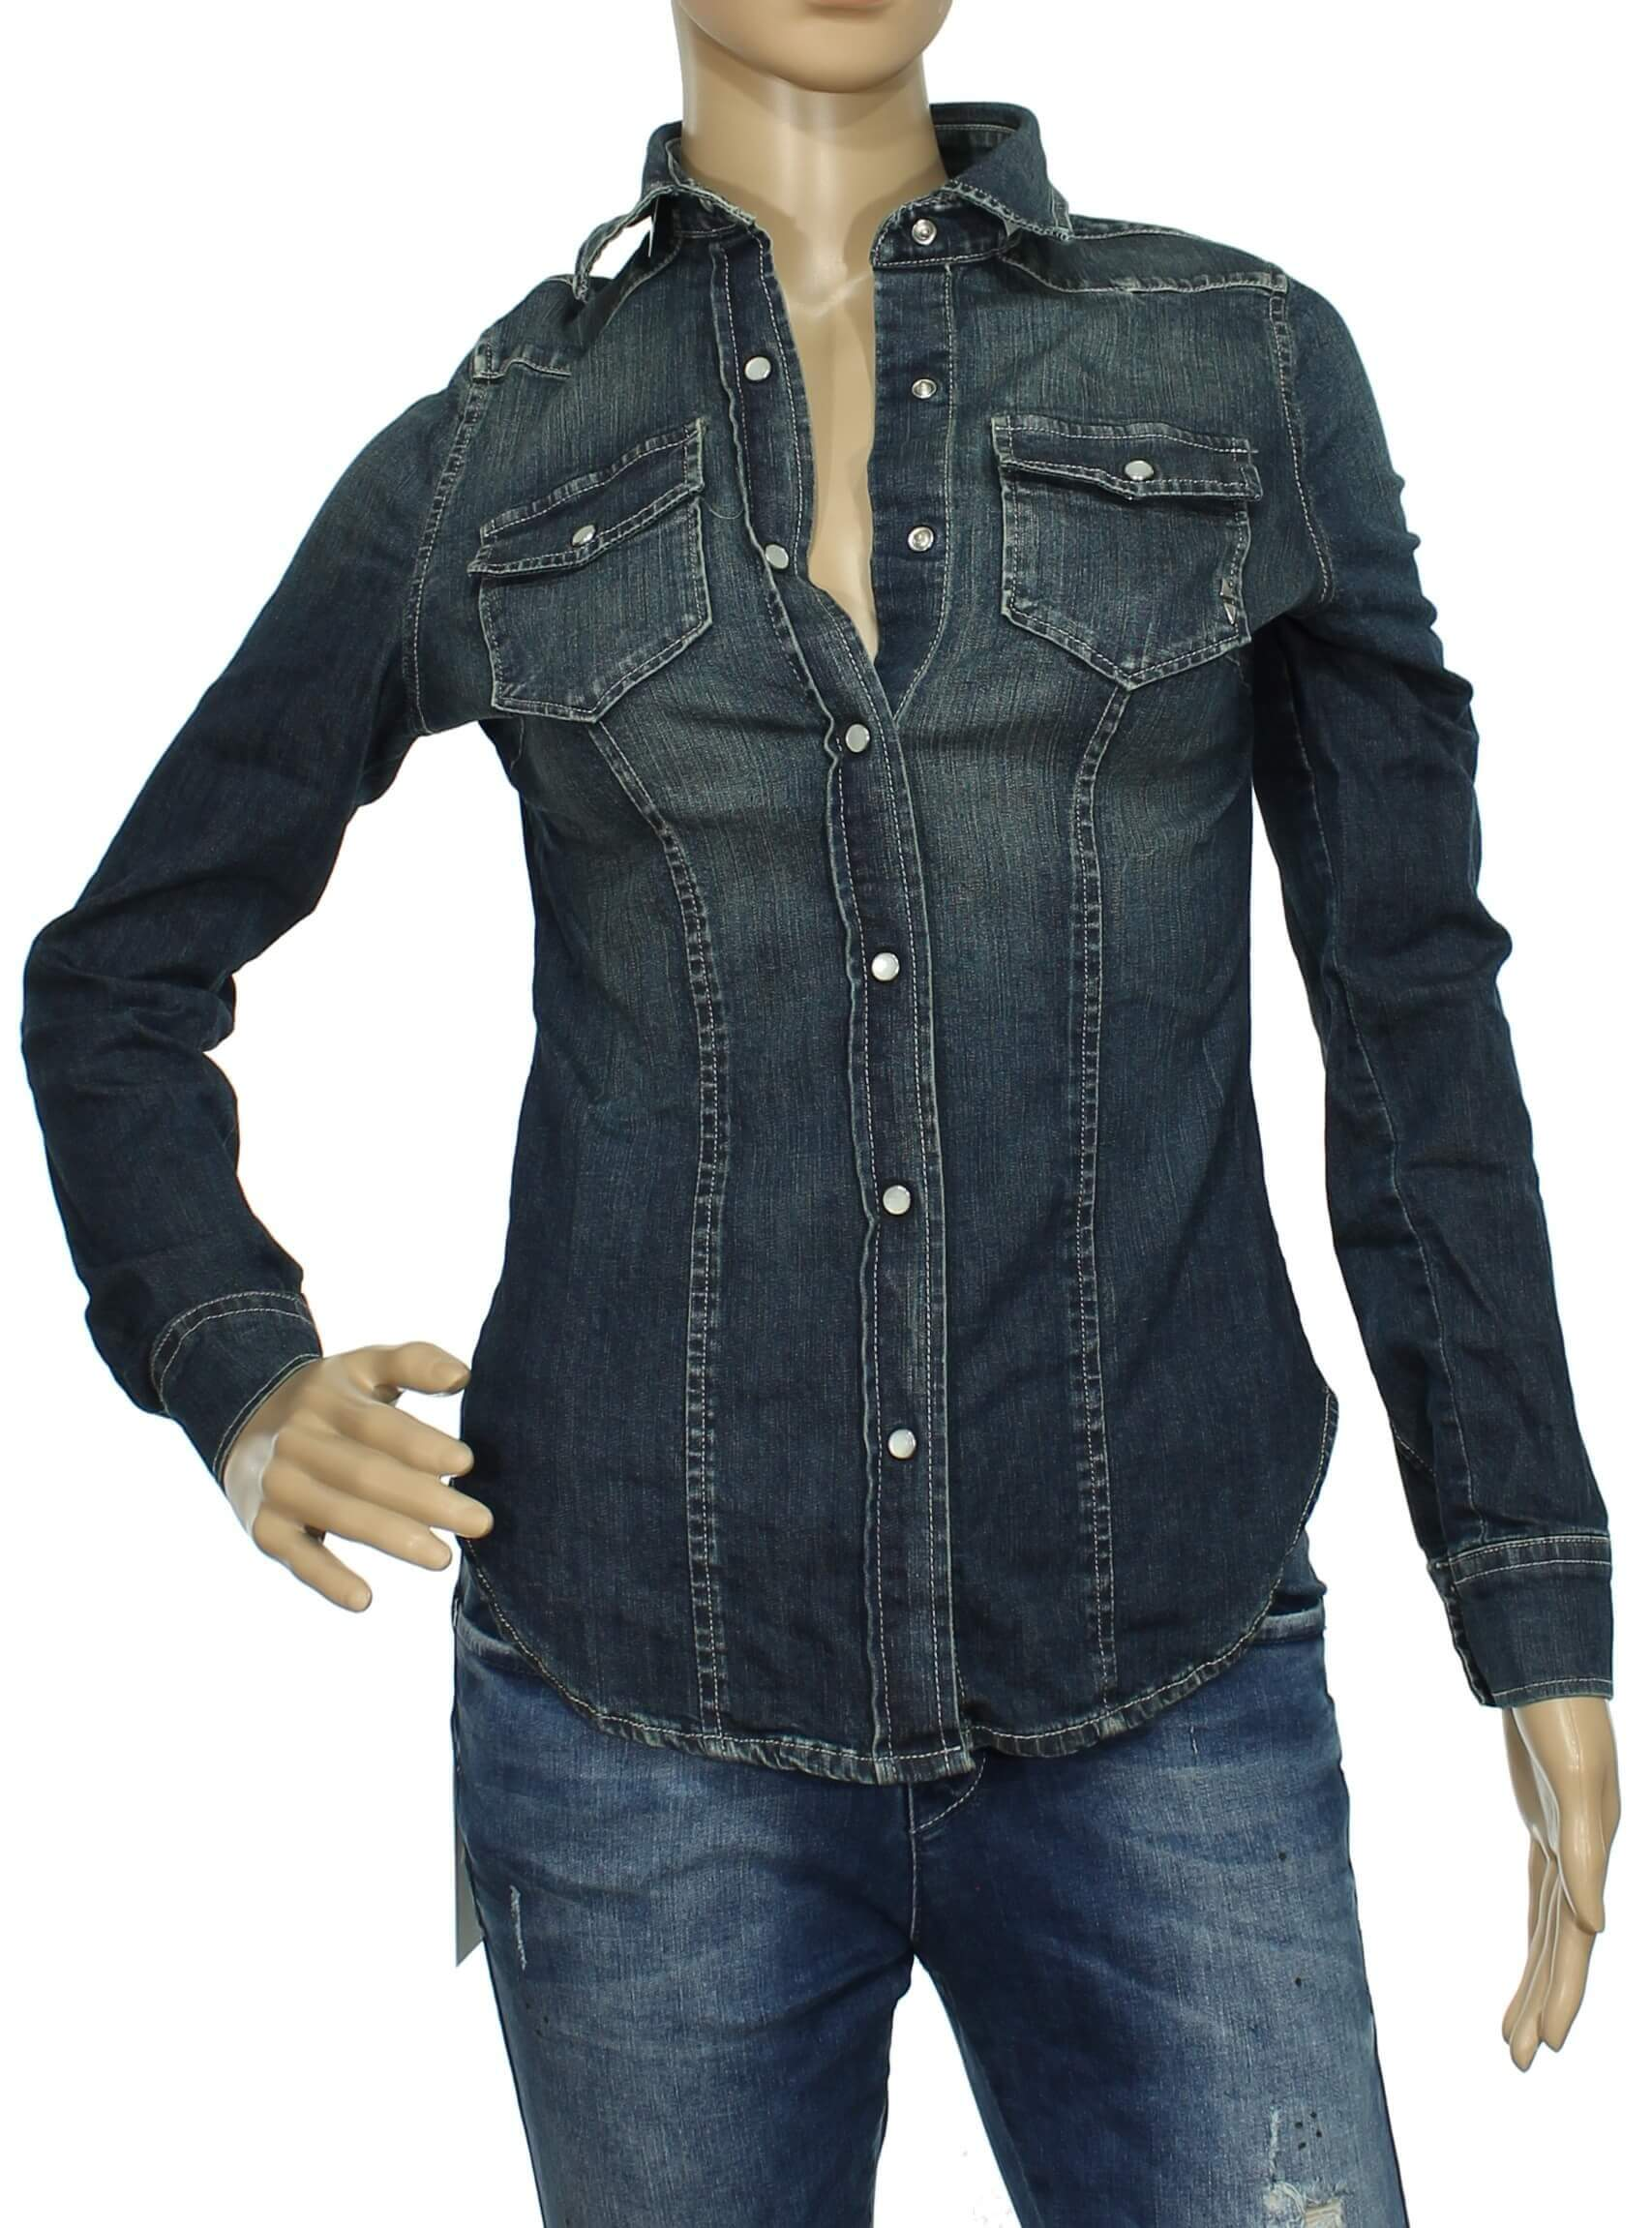 97fd2daff7 FiftyFour - Fifty Four camicia jeans donna